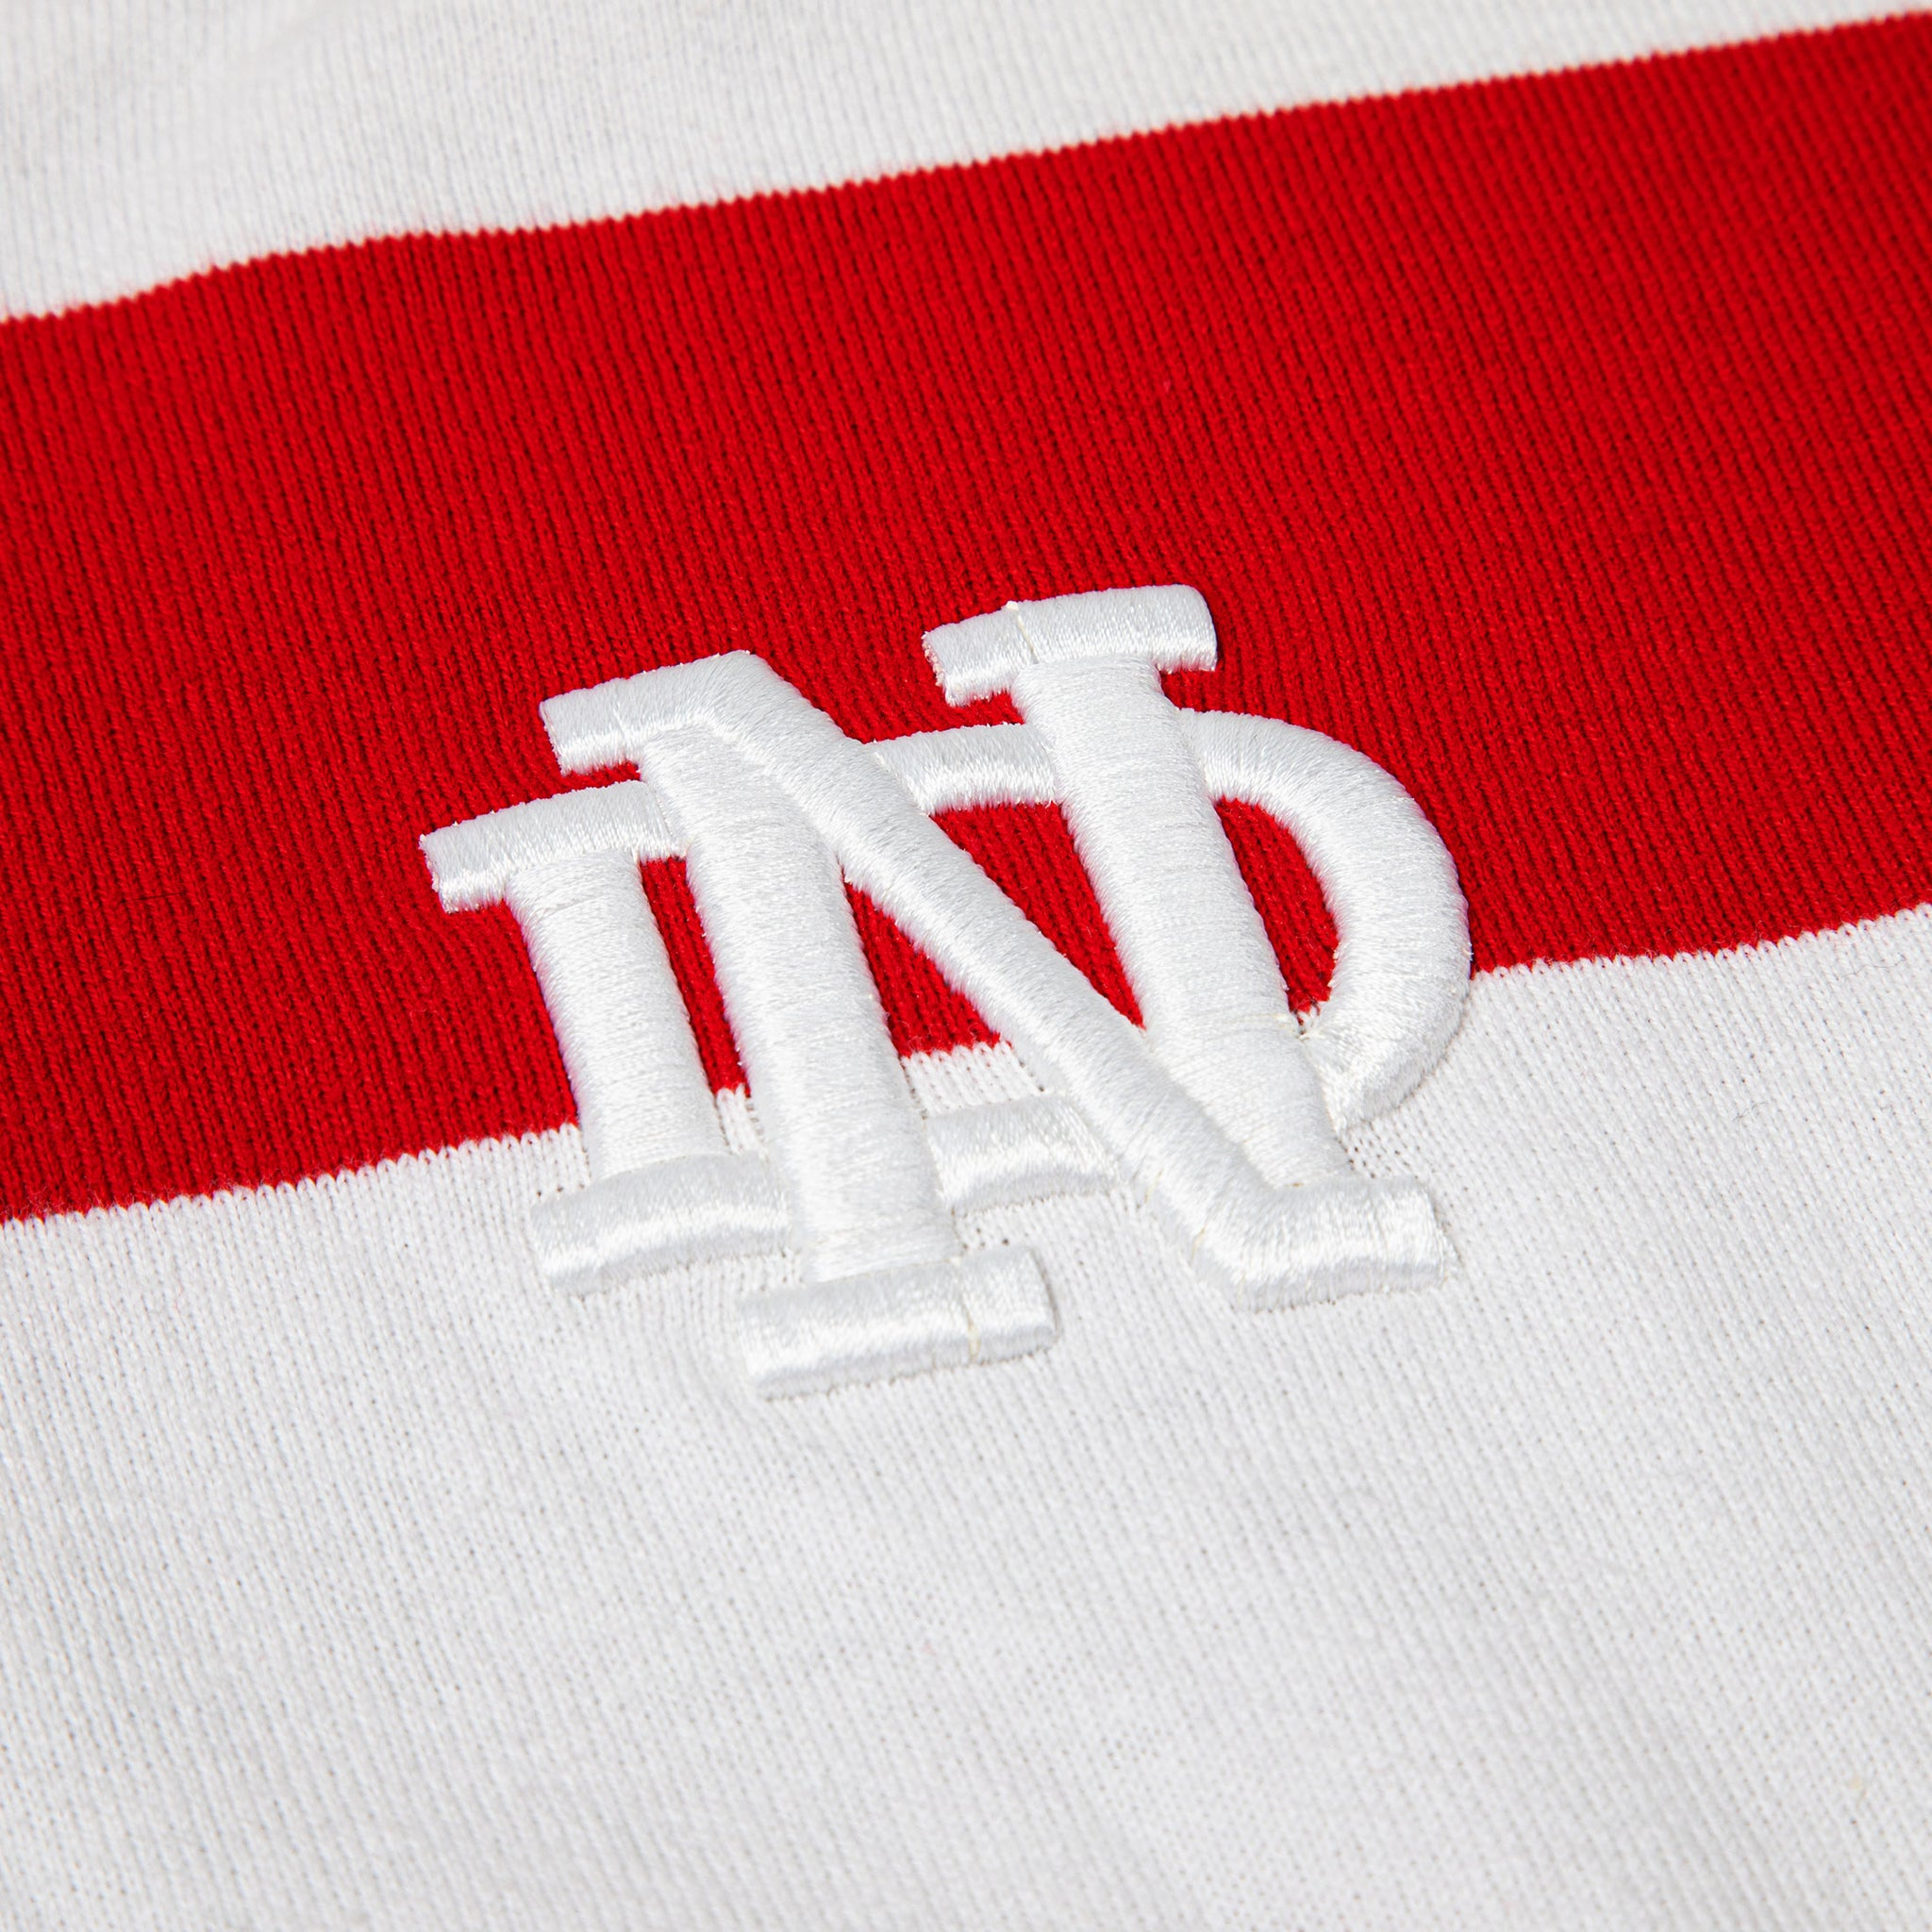 RUGBY 1 OF 1 - HOOPER STRIPES - SIZE L